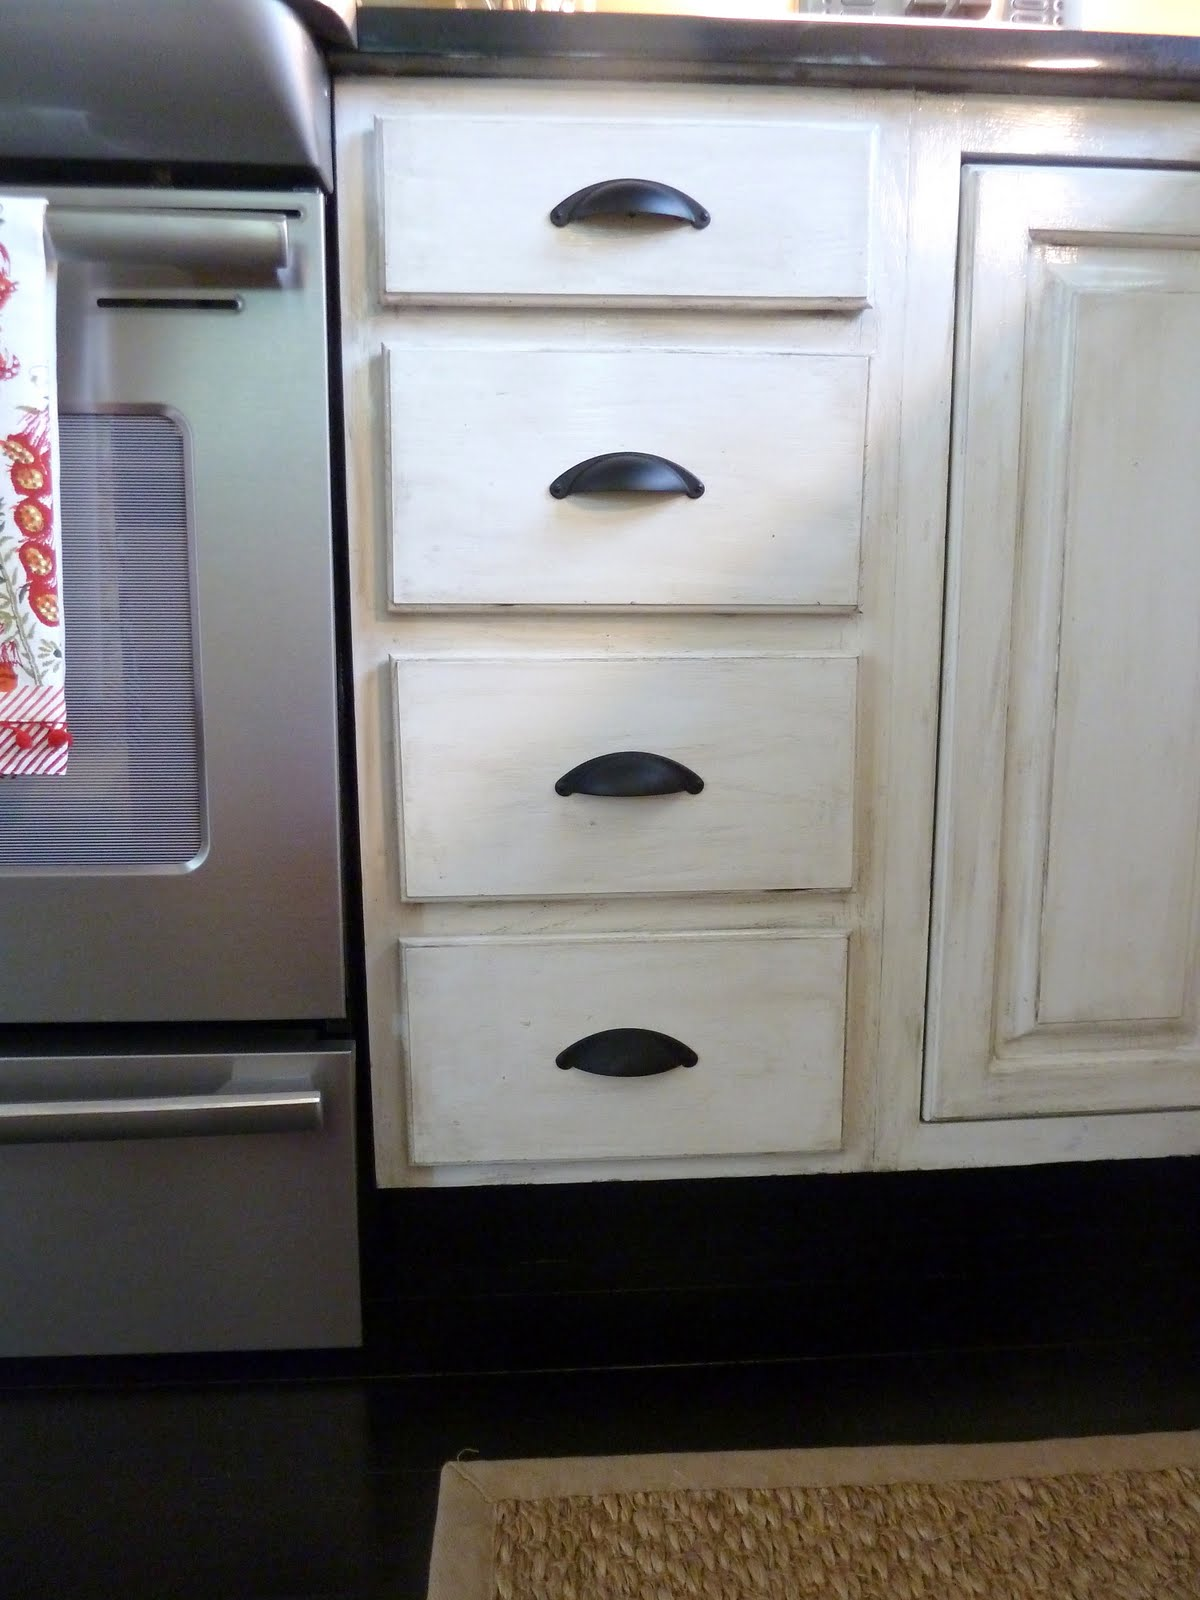 Our fifth house distressed kitchen cabinets how to for I kitchen cabinet